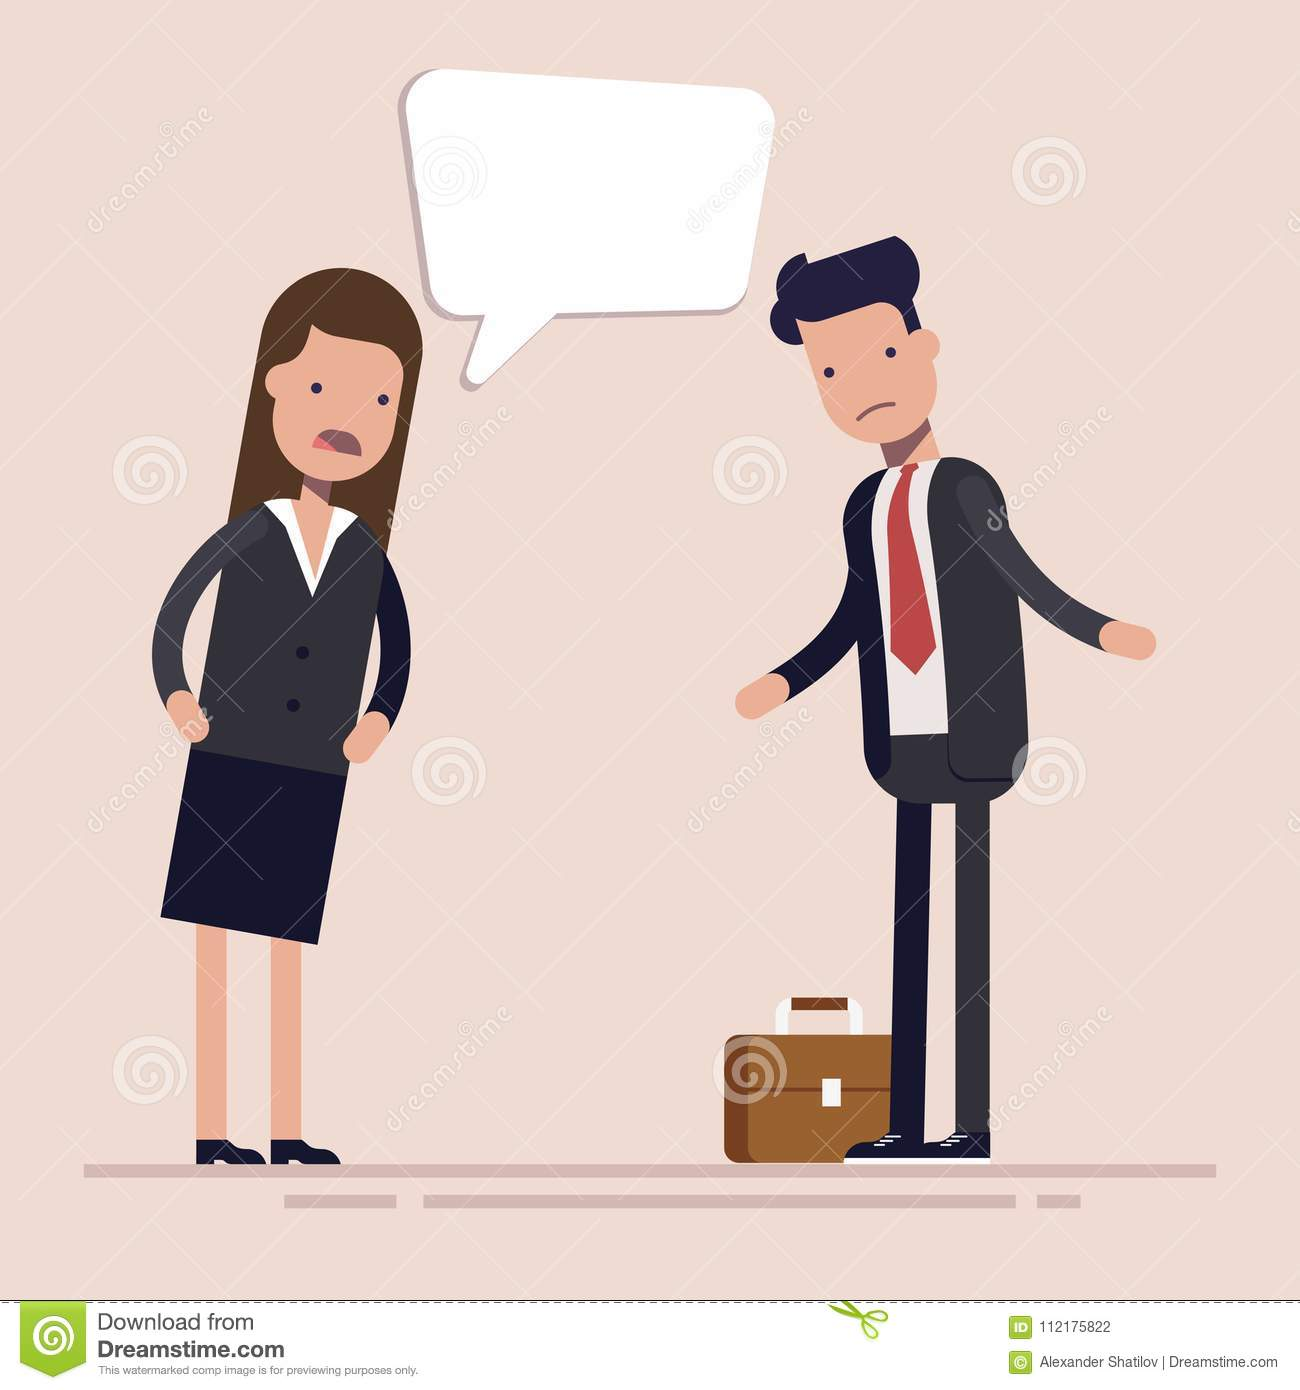 Businesswoman boss shouts at the man employee or manager. Gender discrimination in the workplace. Flat vector